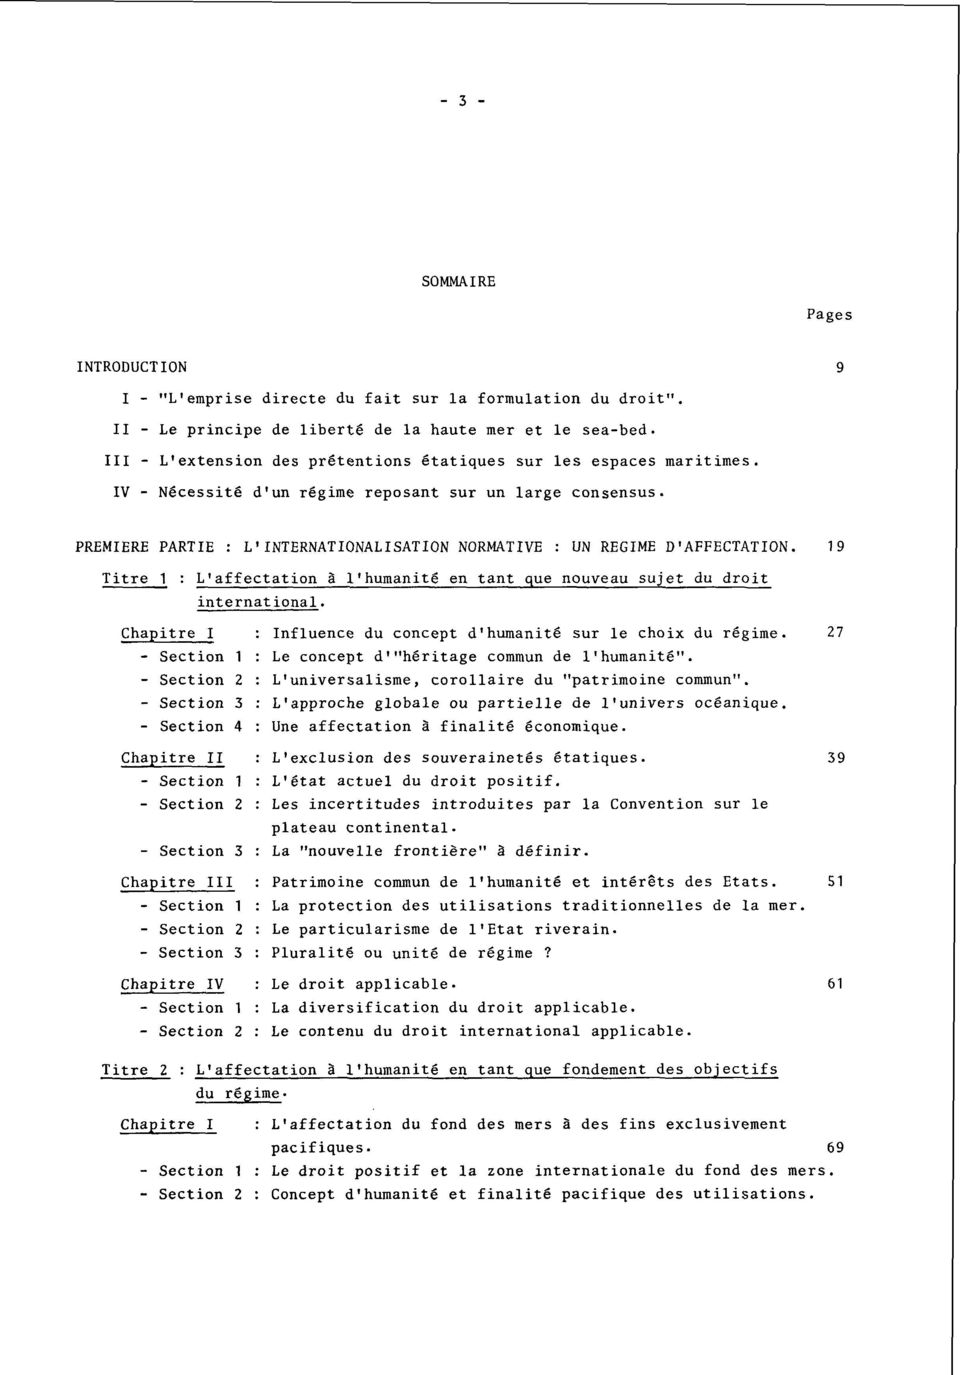 9 PREMIERE PARTIE : L'INTERNATIONALISATION NORMATIVE : UN REGIME D'AFFECTATION. 19 Titre 1 : L'affectation à l'humanité en tant que nouveau sujet du droit international.